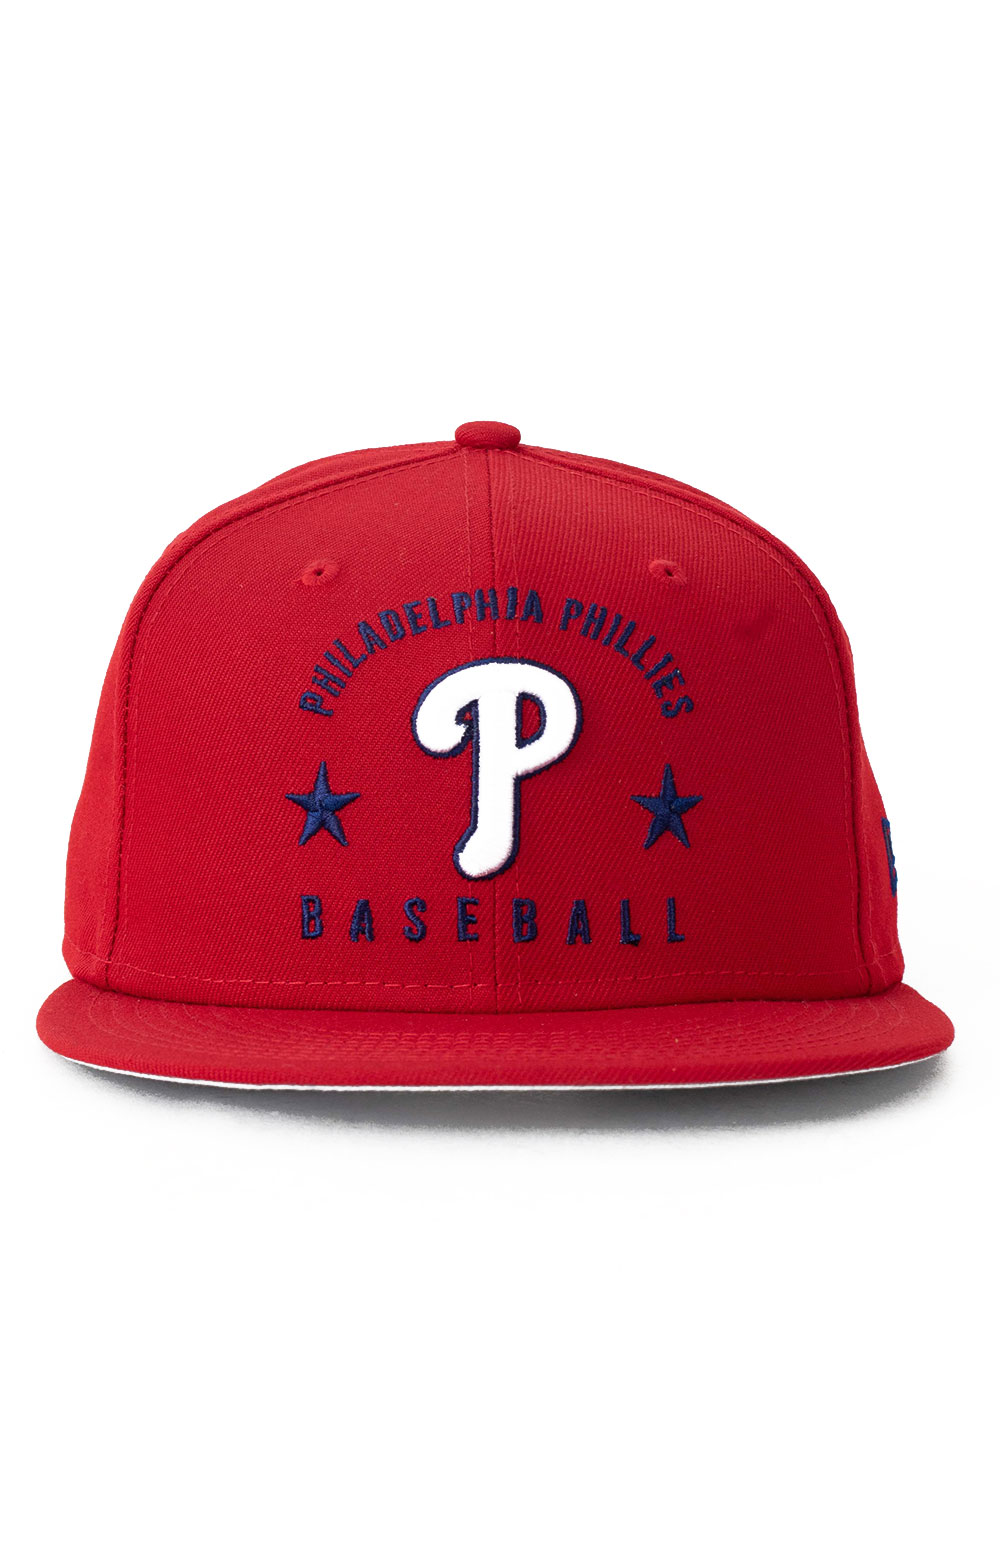 9Fifty Arched Philadelphia Phillies Snap-Back Hat 2